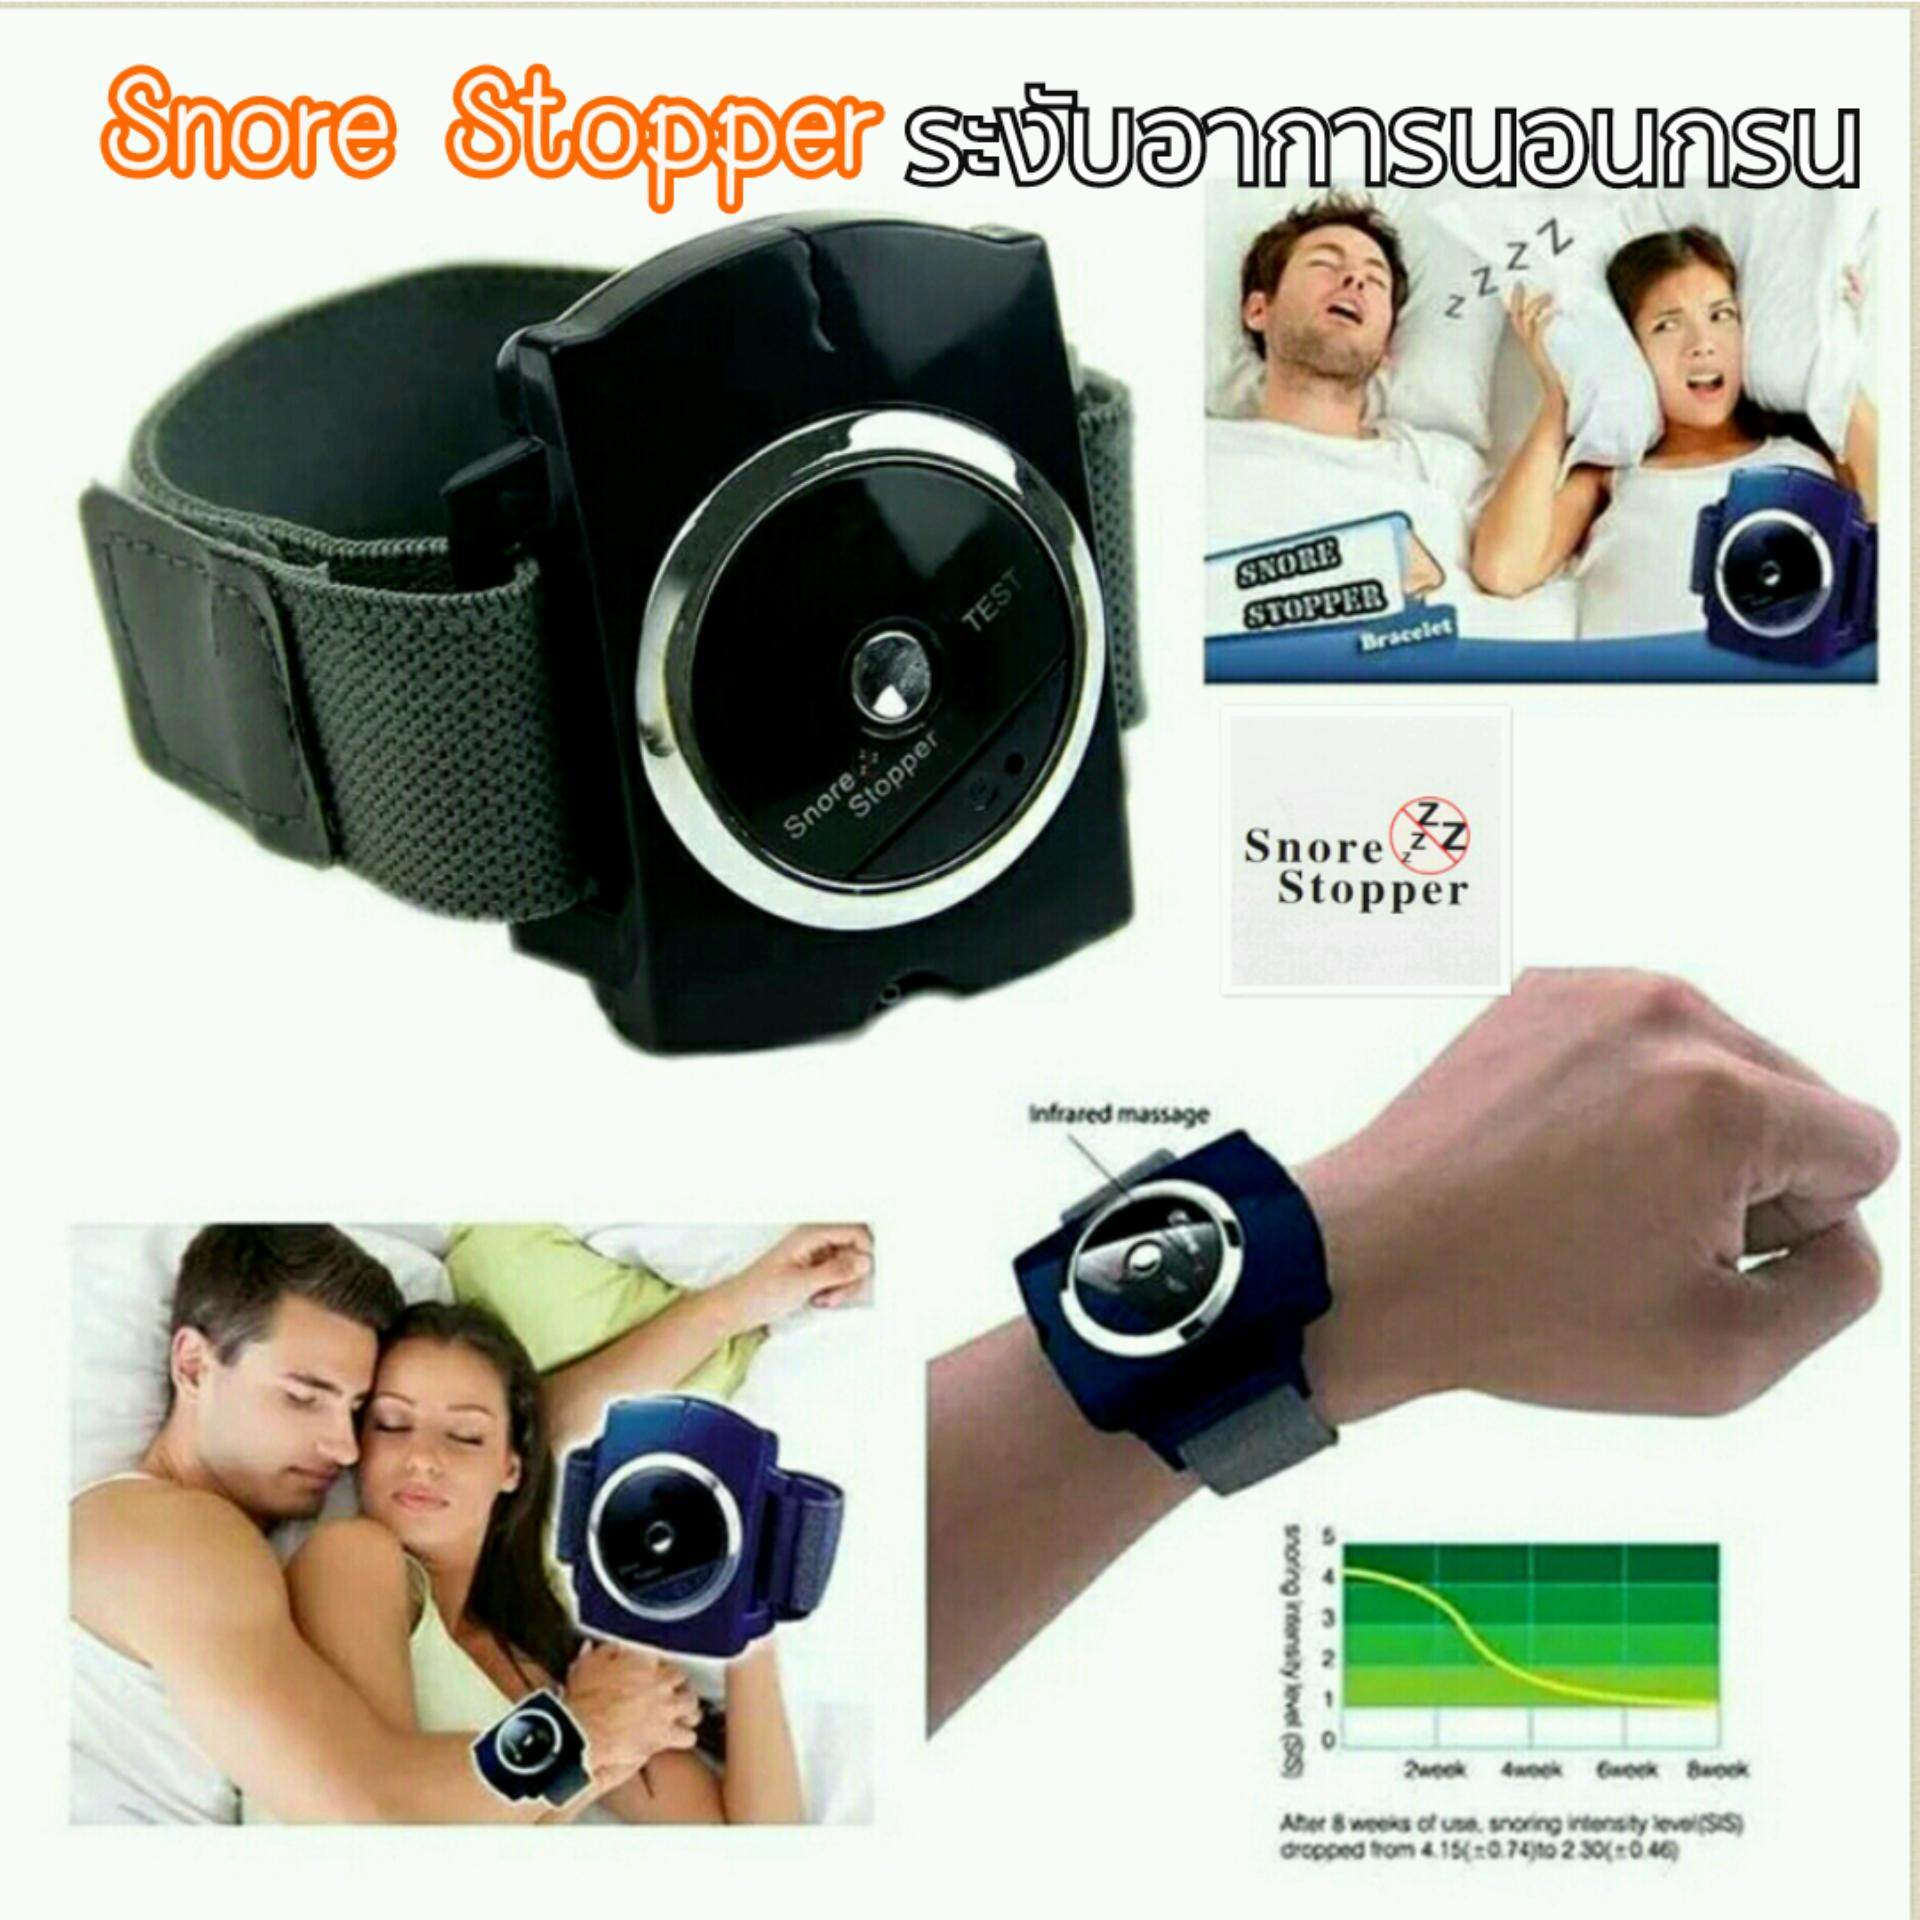 สายรัดข้อมือ อุปกรณ์ระงับอาการนอนกรน Smart Snoring Stopper Wristband Device Aid Snore Blocker Snore Gone Stopper Infrared Intelligent Anti-Snore - intl